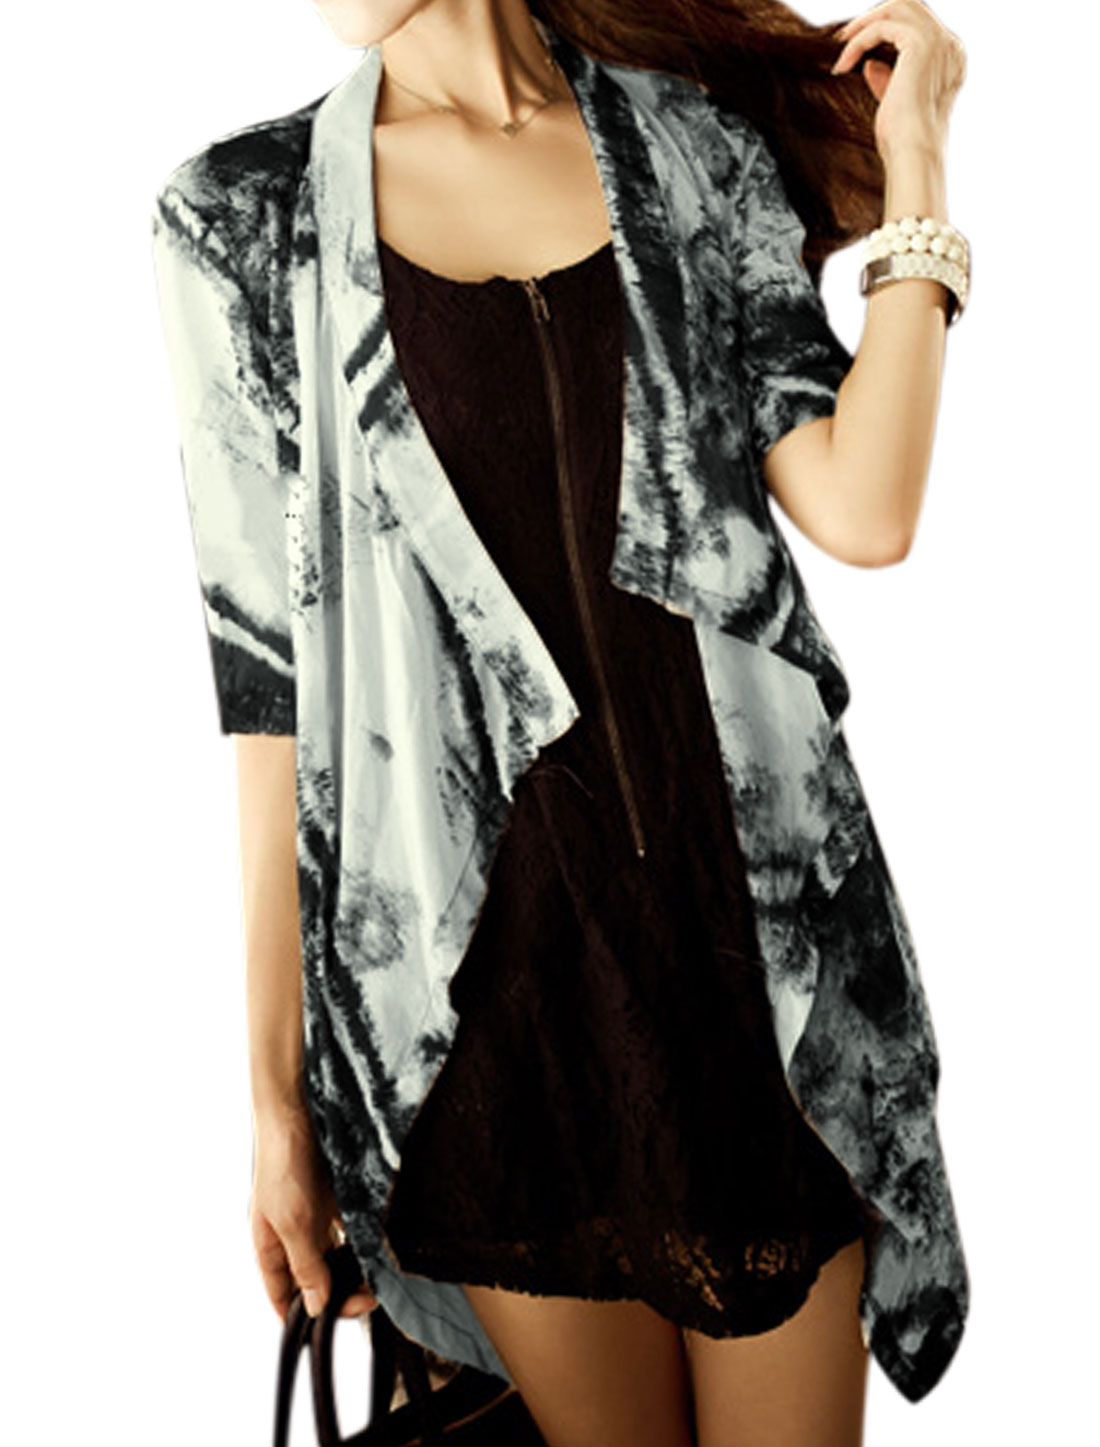 Lady Front Opening Novelty Prints Tie Hem Semi Sheer Cardigan Black White S